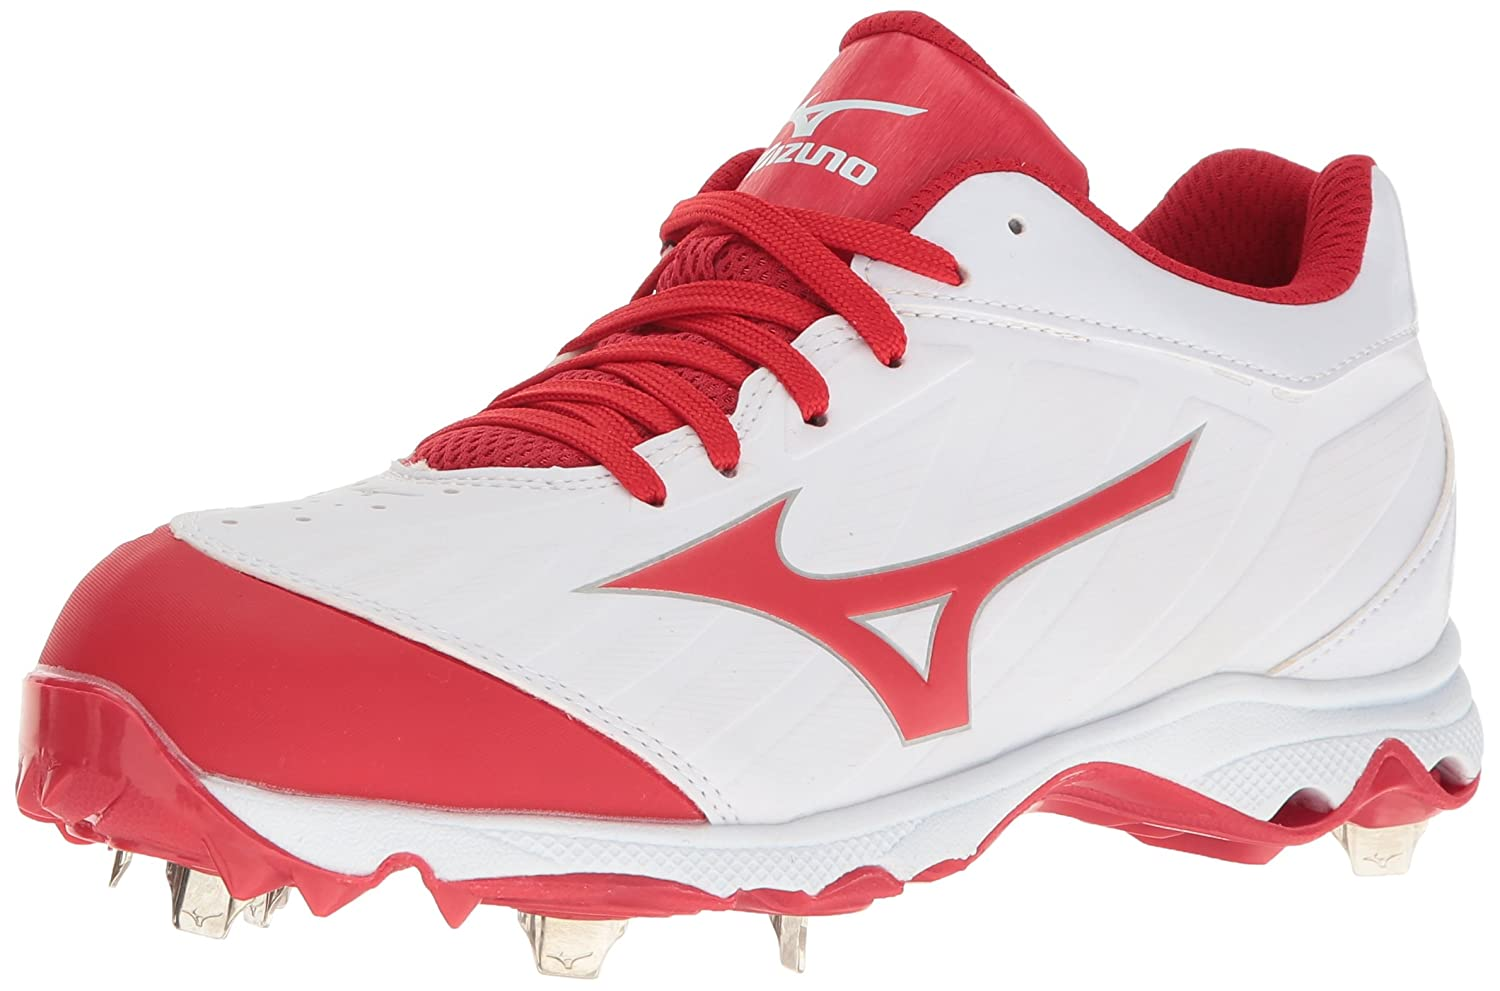 White-red Mizuno Womens 9-Spike Advanced Sweep 3 Softball shoes